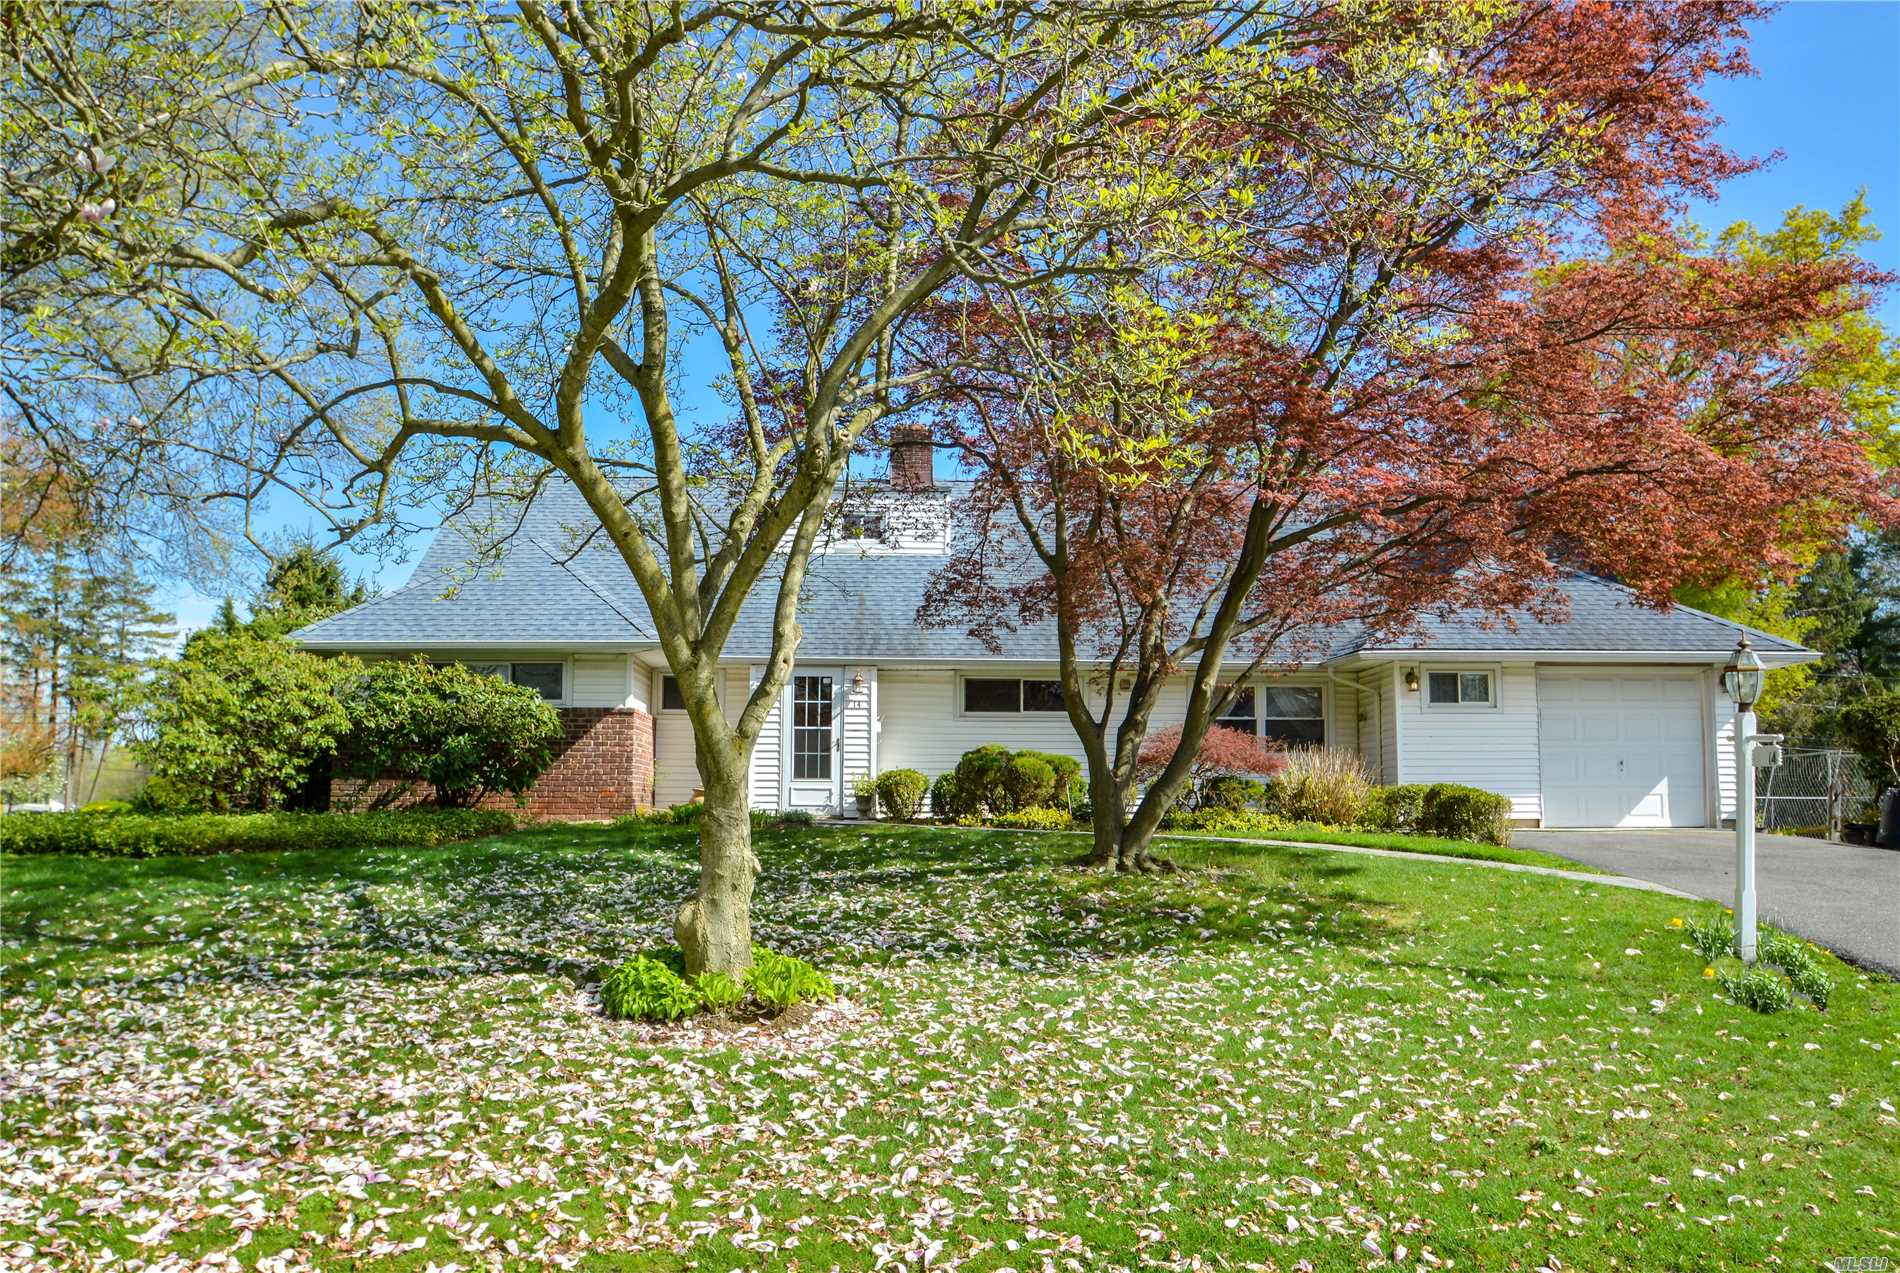 Expanded Ranch 5 Bedrooms in The Heart Of Flower Hill, Living room W/Fireplace, Hard Wood Floor, Spacious Rooms, Beautiful Formal Dr, Eik W/ Granite & Ss Appliances, Fenced Beautiful Backyard, Conveniently Located Near Shopping Center, Highway and Train Station, Roslyn Schools District, Great Location!!!